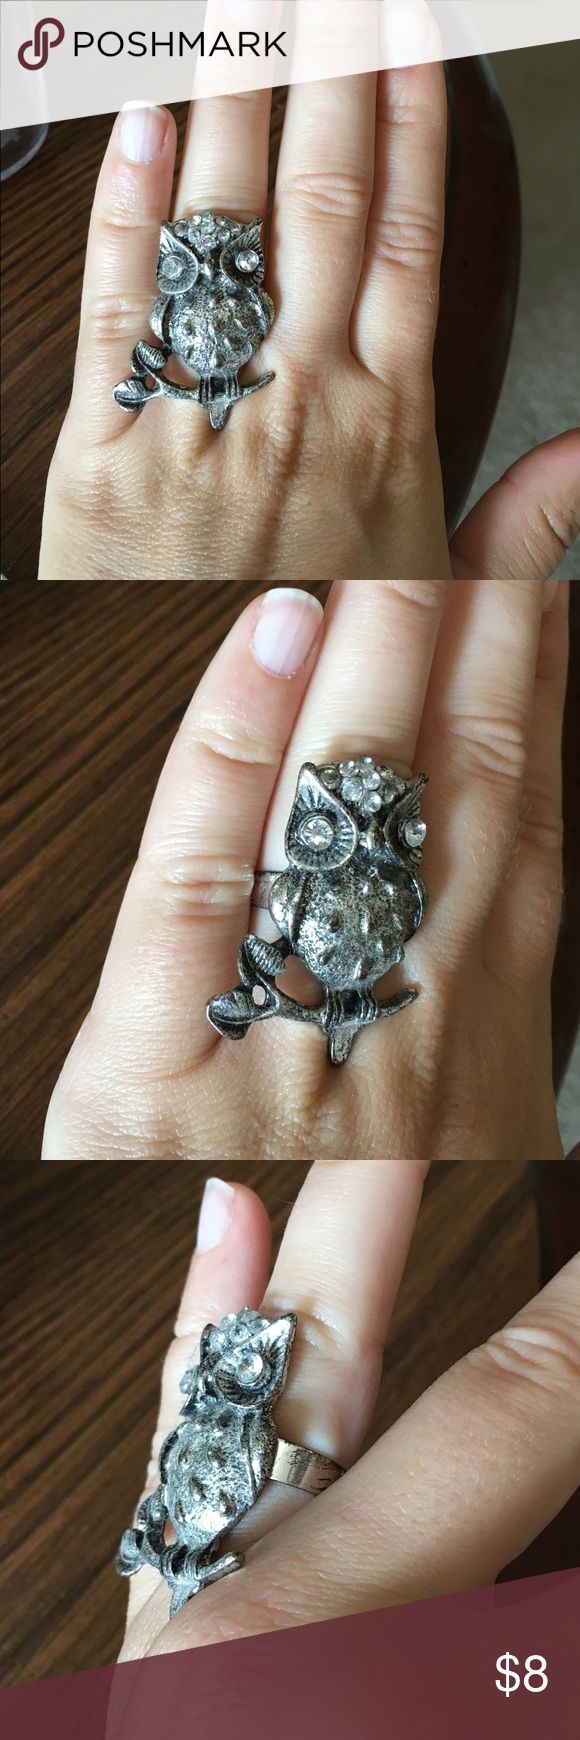 owl ring owl wedding ring Silver Owl Ring Gorgeous statement Owl Ring Adjustable band Check out my closet for